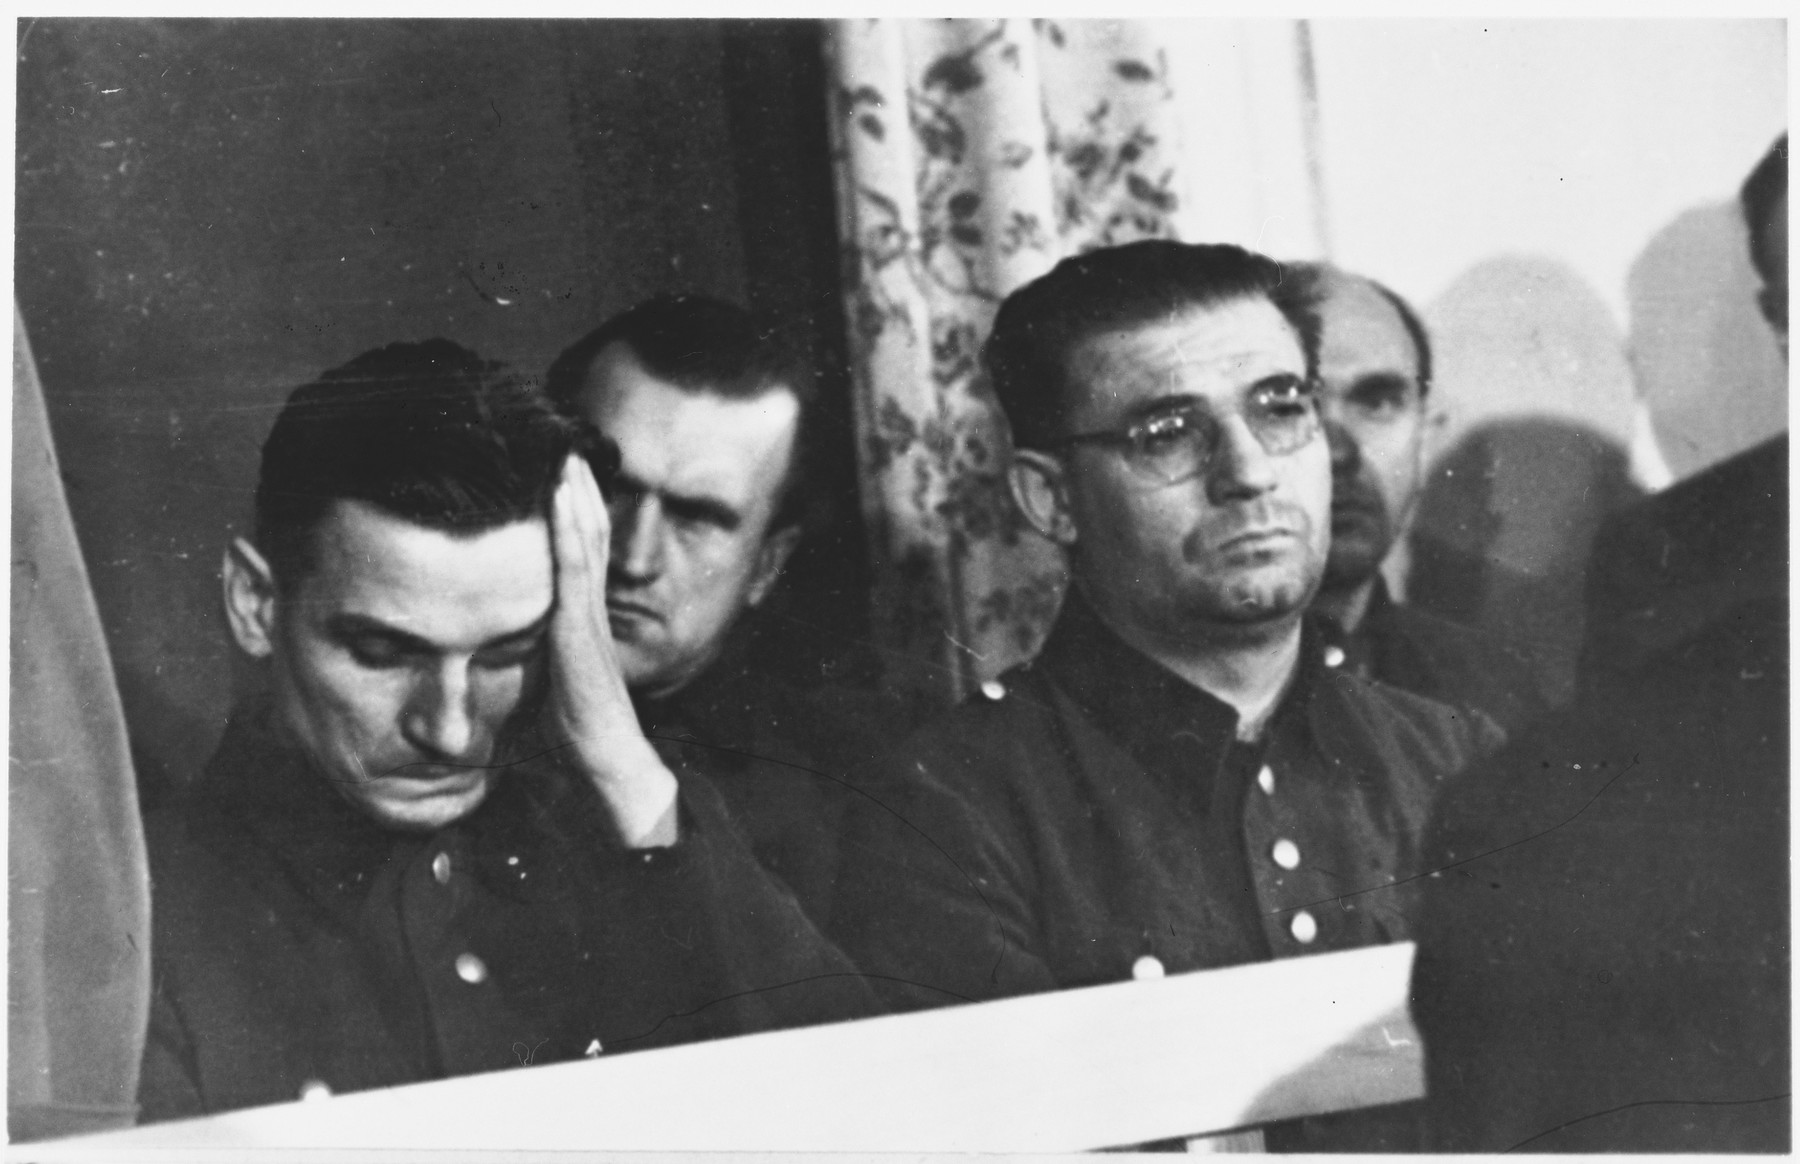 Defendants Michael Koerner (left) and Kurt Eccarius (right) sit in the dock at the Sachsenhausen concentration camp war crimes trial in Berlin.